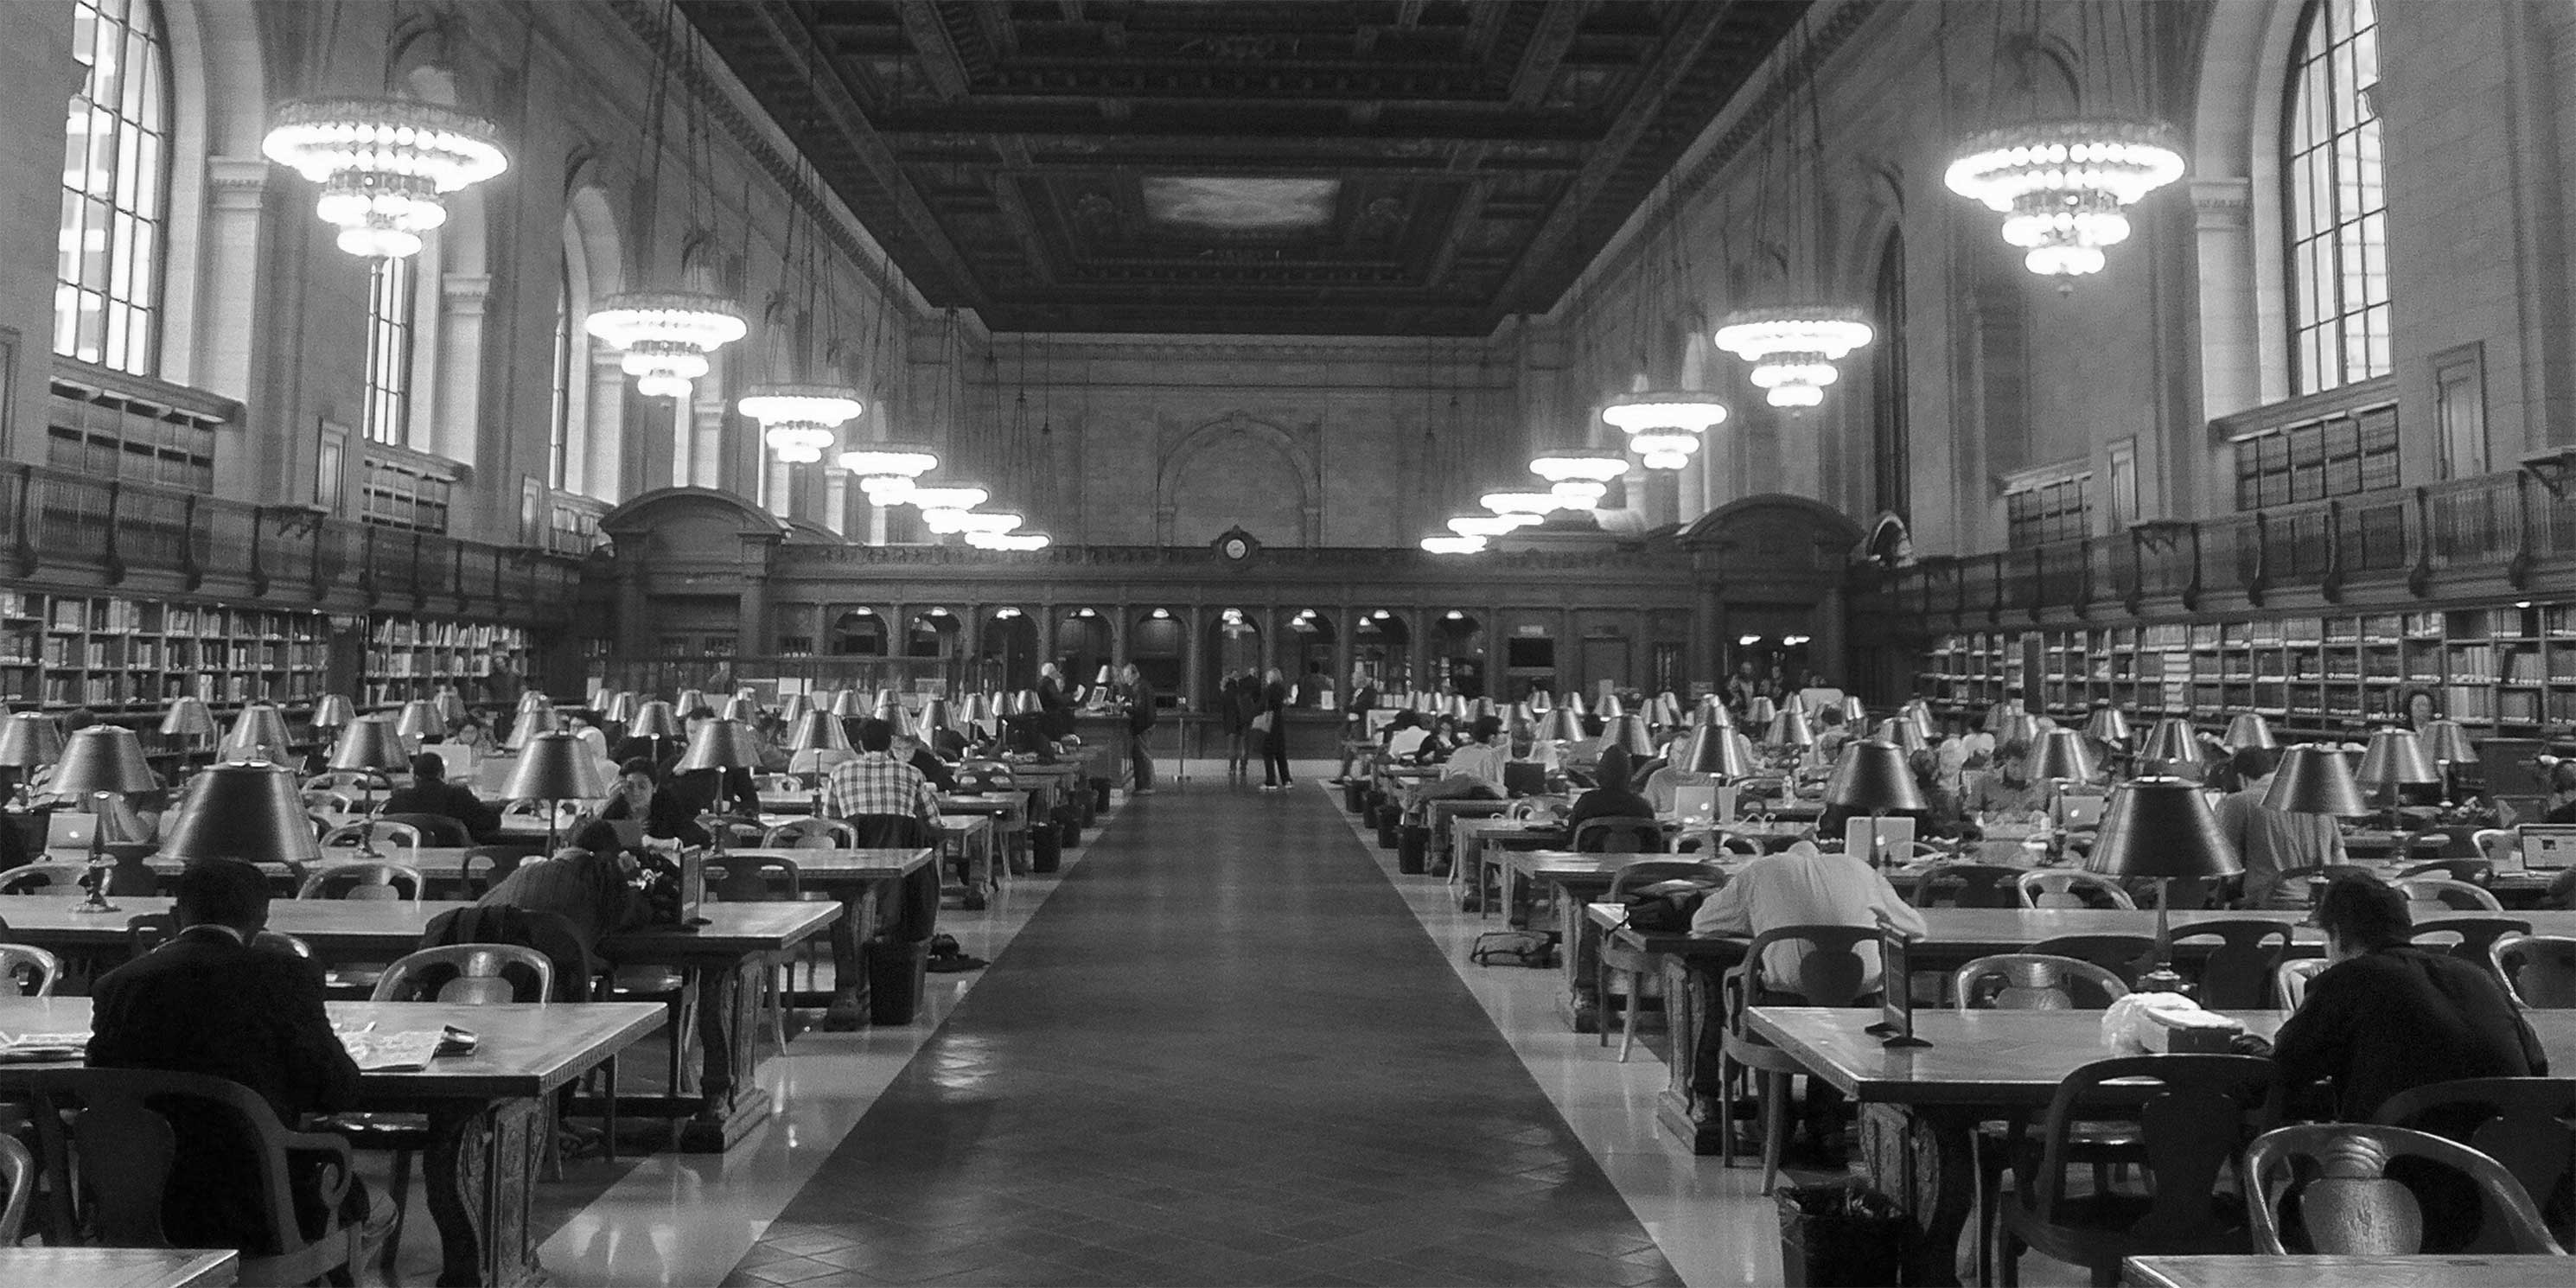 The Rose Reading Room at the New York Public Library's Stephen A. Schwarzman Building. Photo: Wikimedia Commons, Ran Yaniv Hartstein.